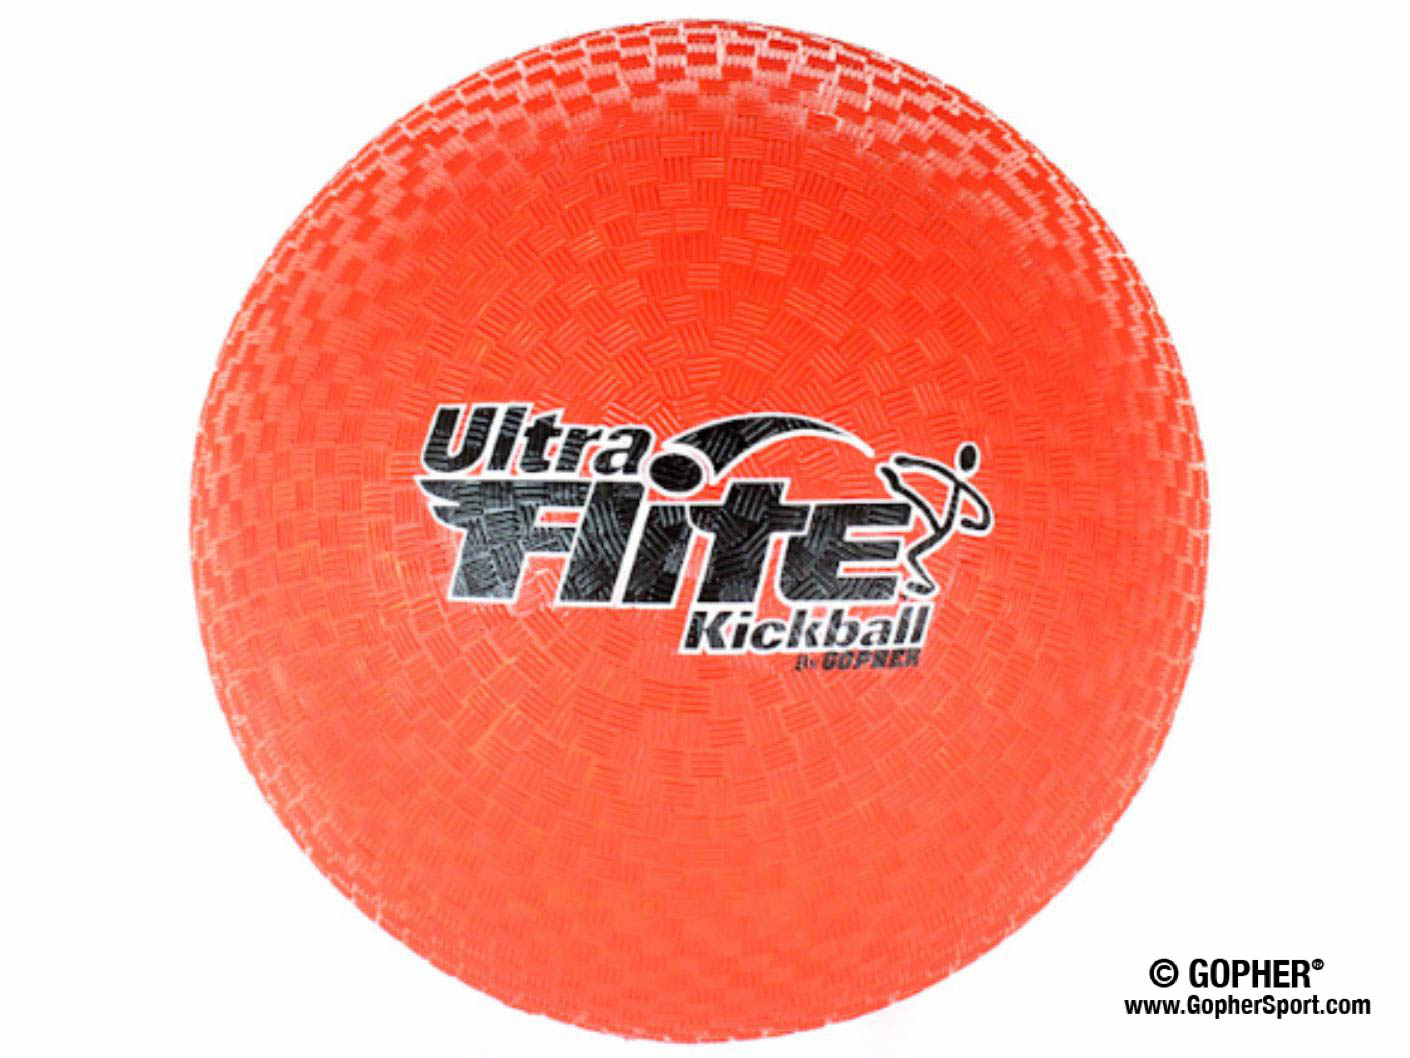 360° view of UltraFlite kickball